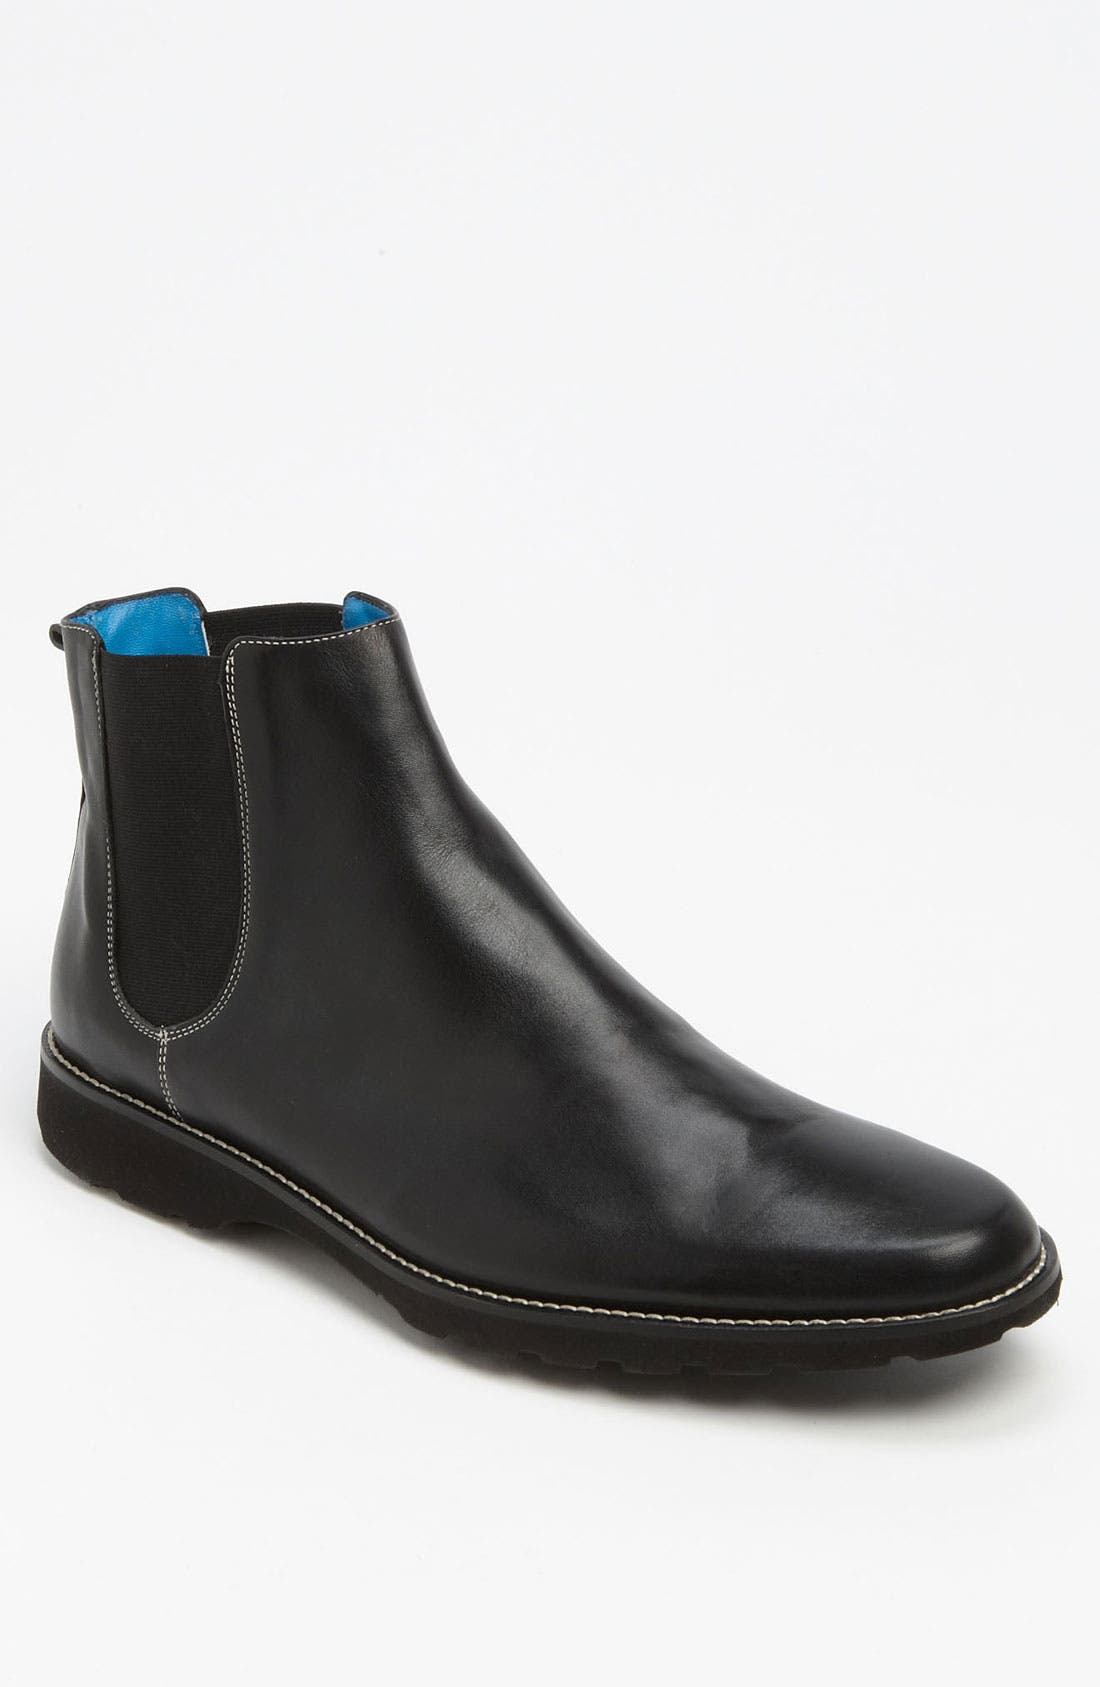 Alternate Image 1 Selected - Michael Toschi 'SL900' Chelsea Boot